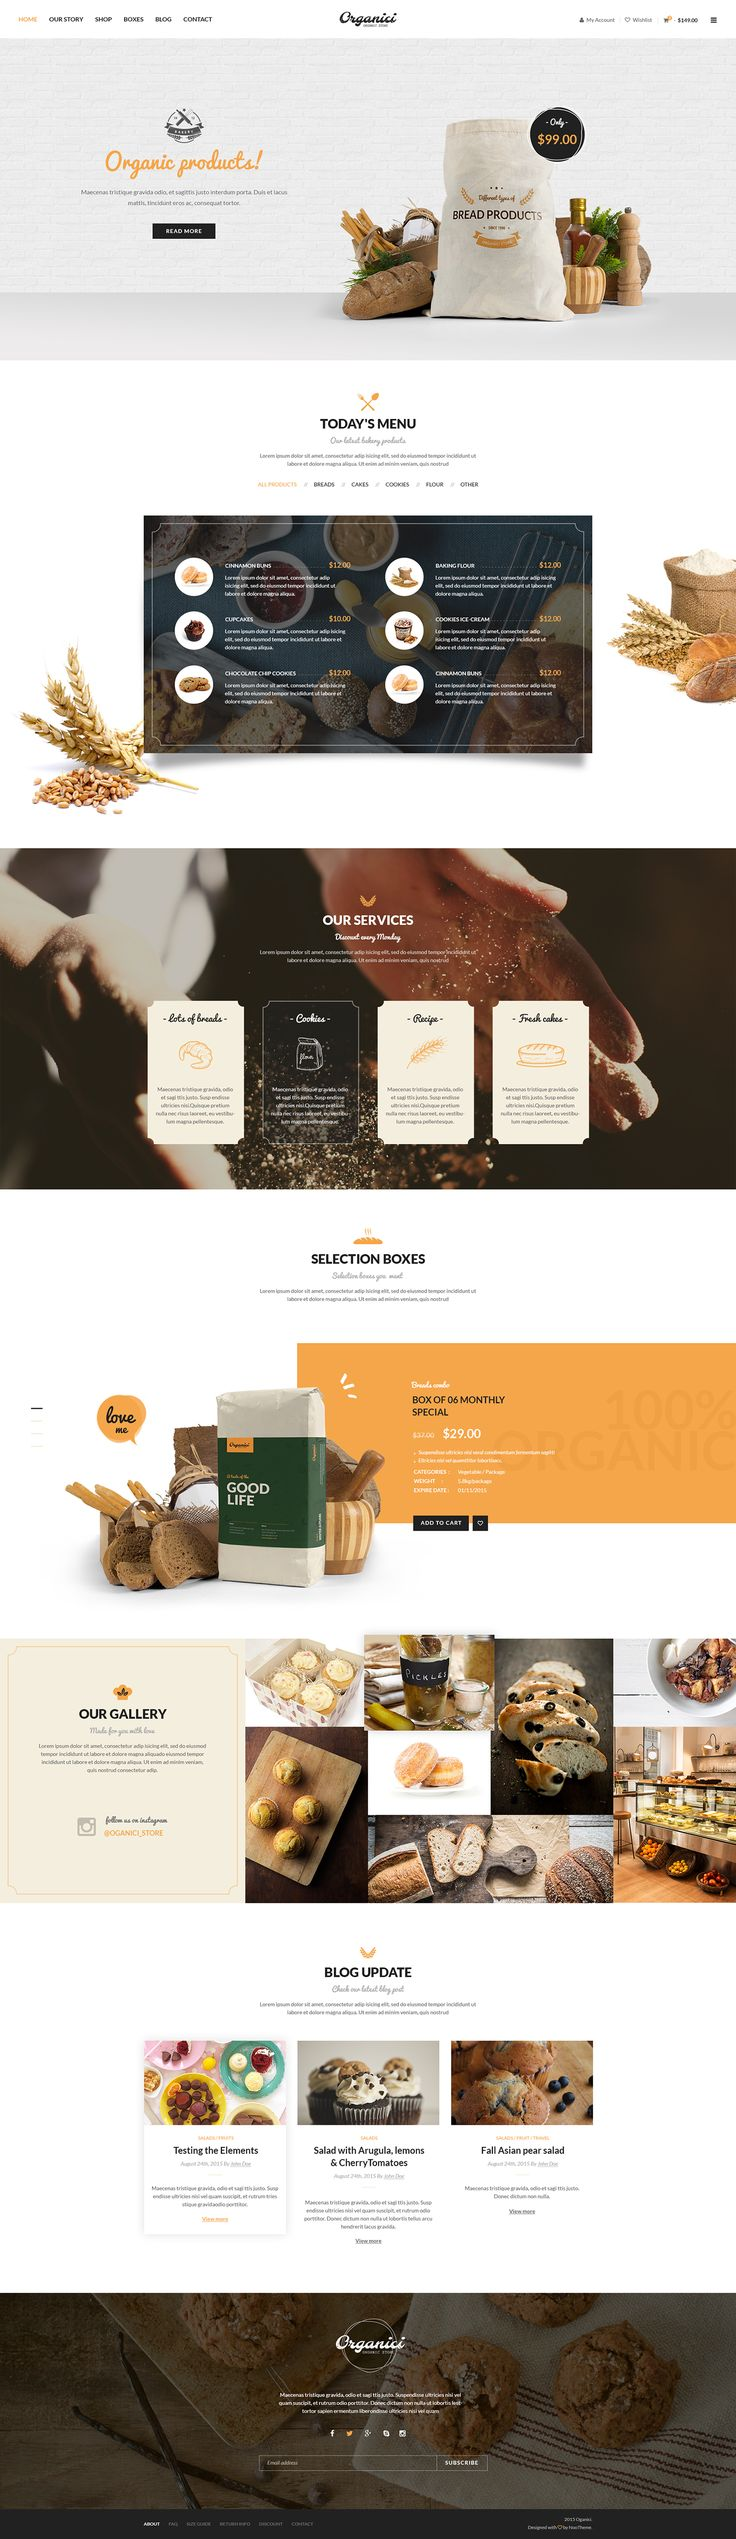 Organici - Organic Store WordPress Theme on Behance